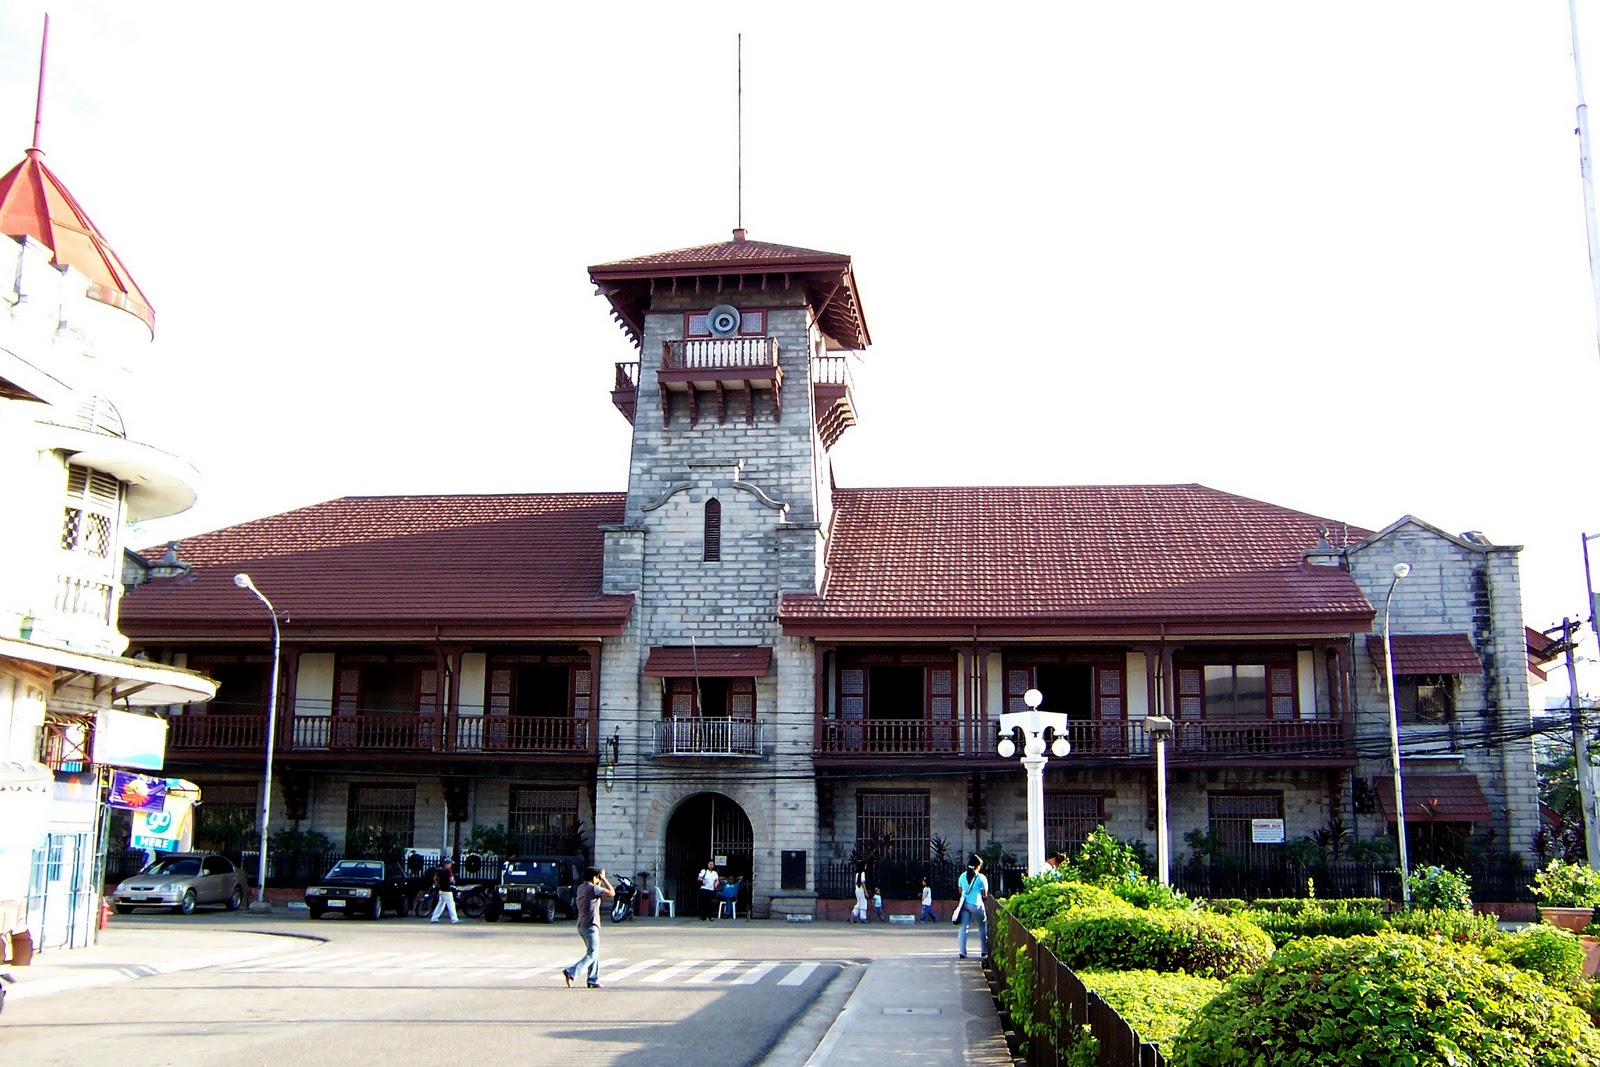 zamboanga city women Agodacom has the best prices on zamboanga city hotels, resorts, villas, hostels & more guaranteed lowest rate book now, pay later.